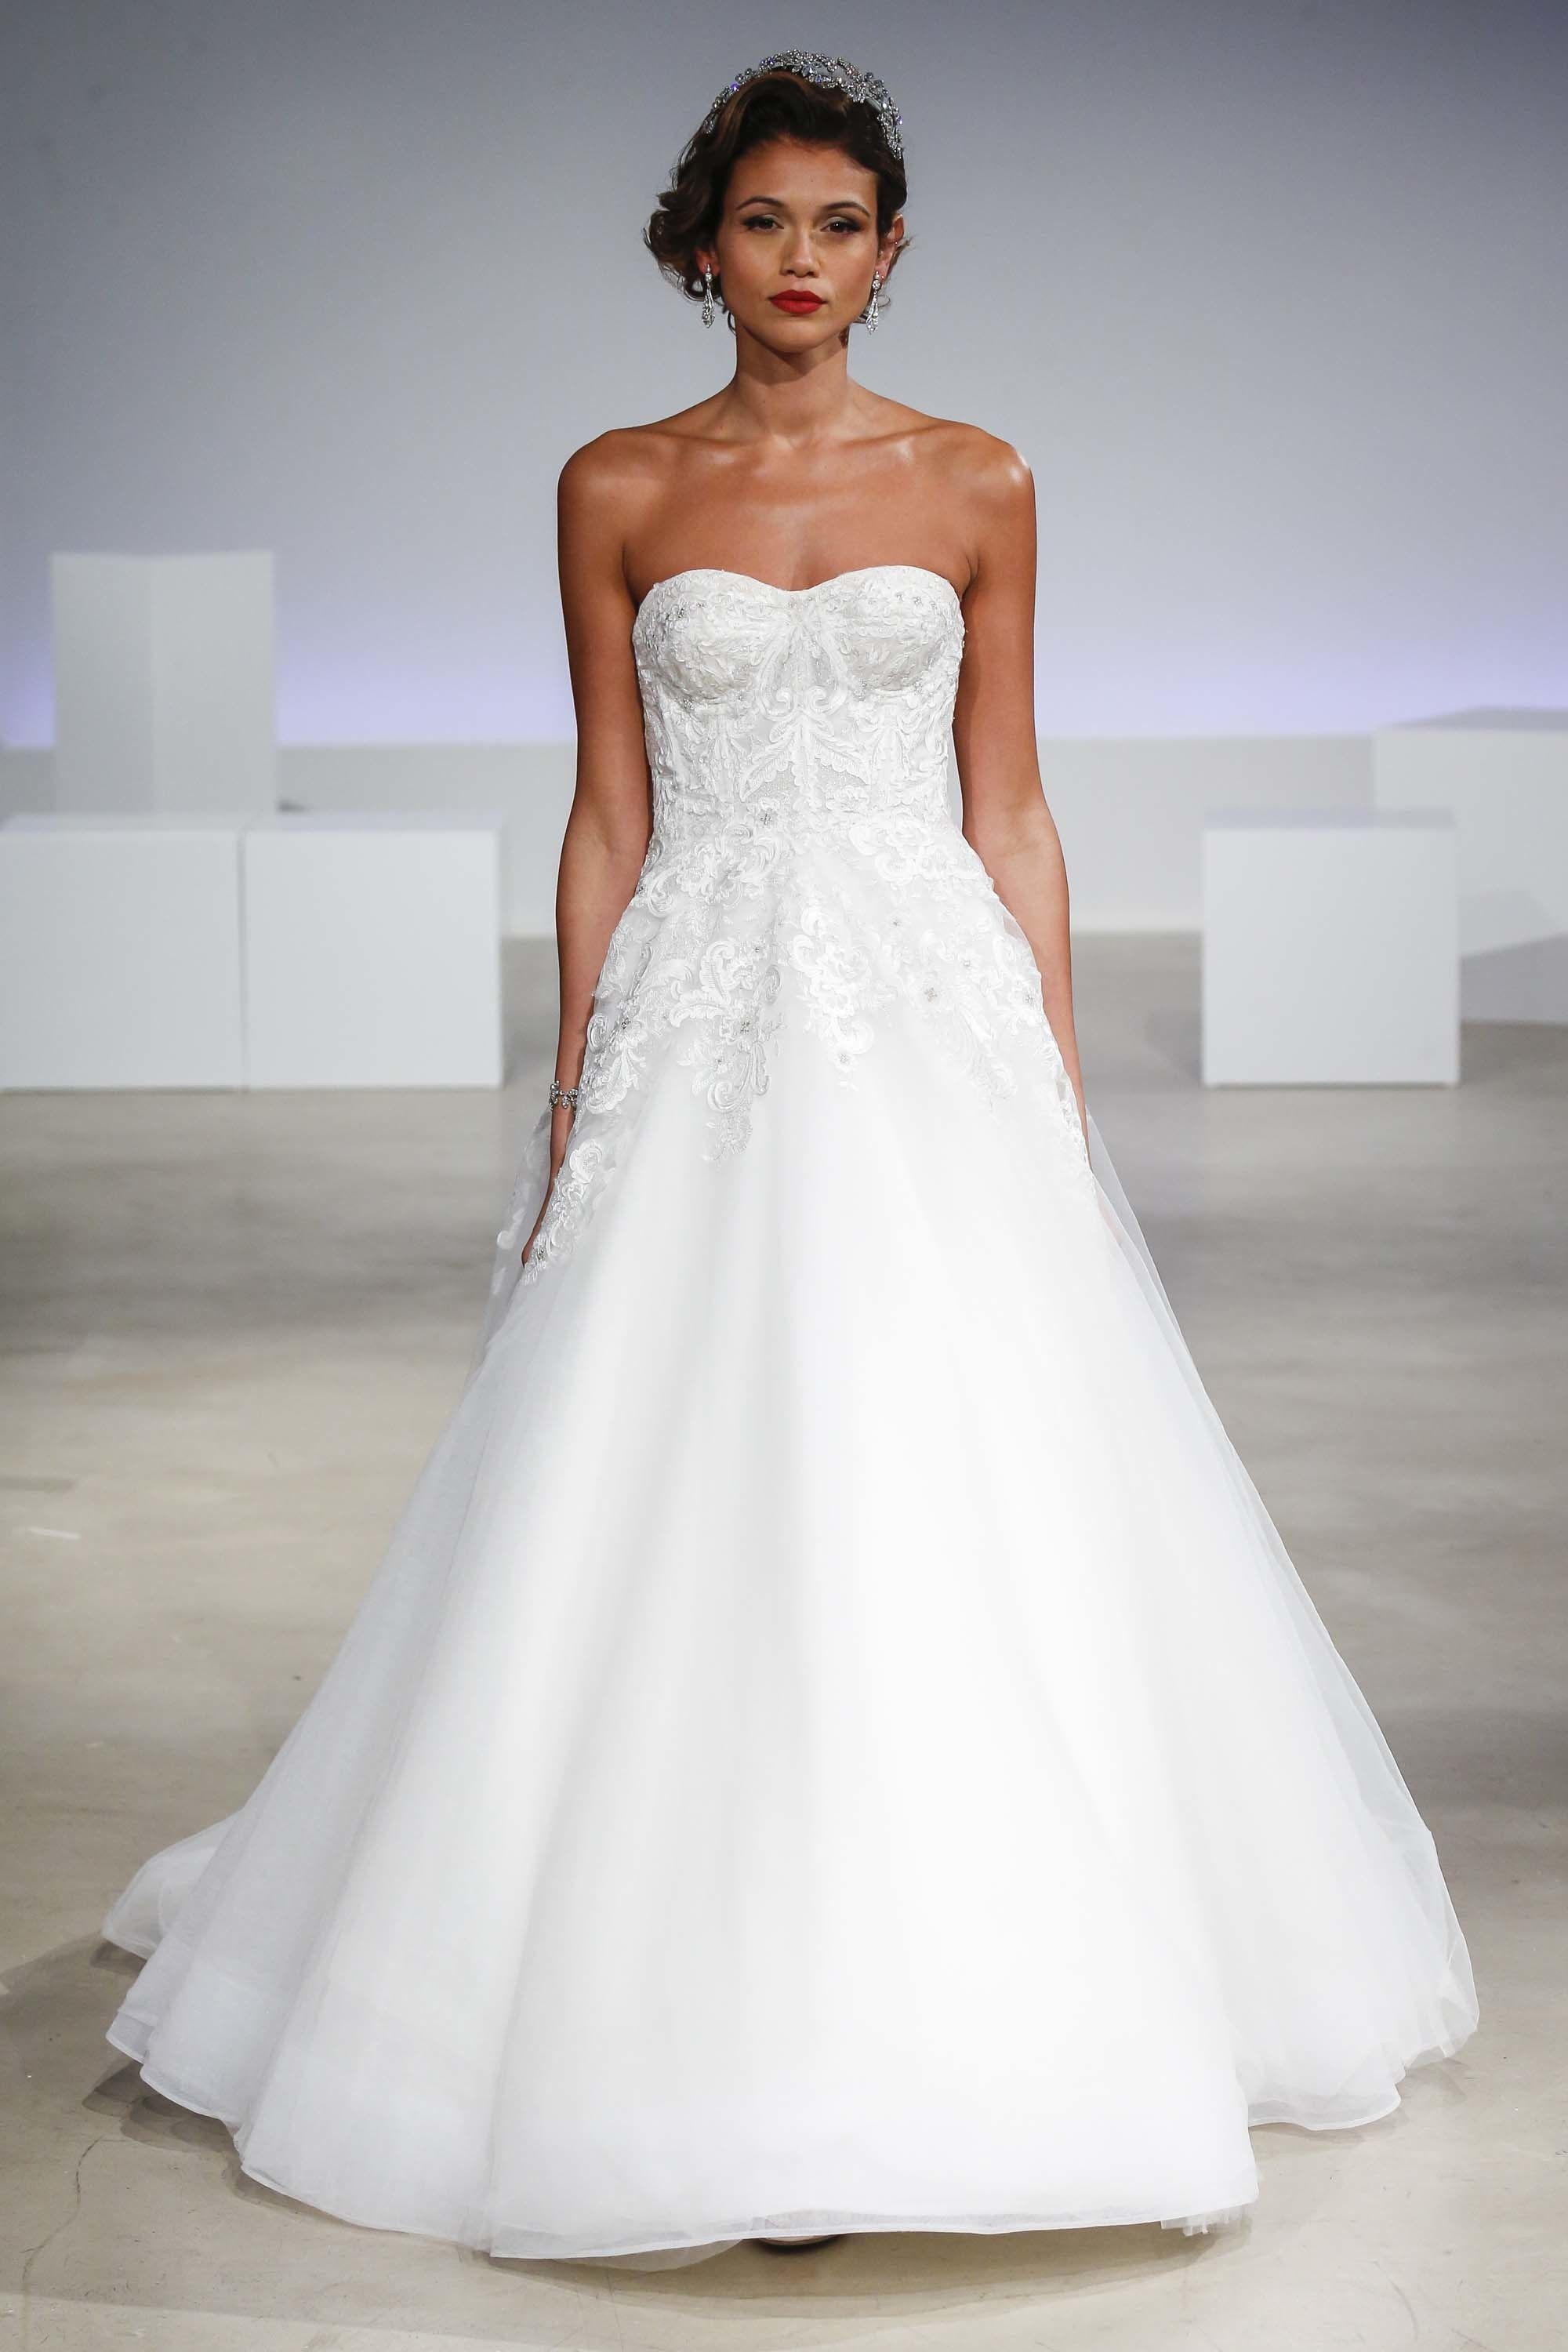 Dress for fall wedding  Eleanor Anne Barge Fall   Anne Barge Bridal  Pinterest  Anne